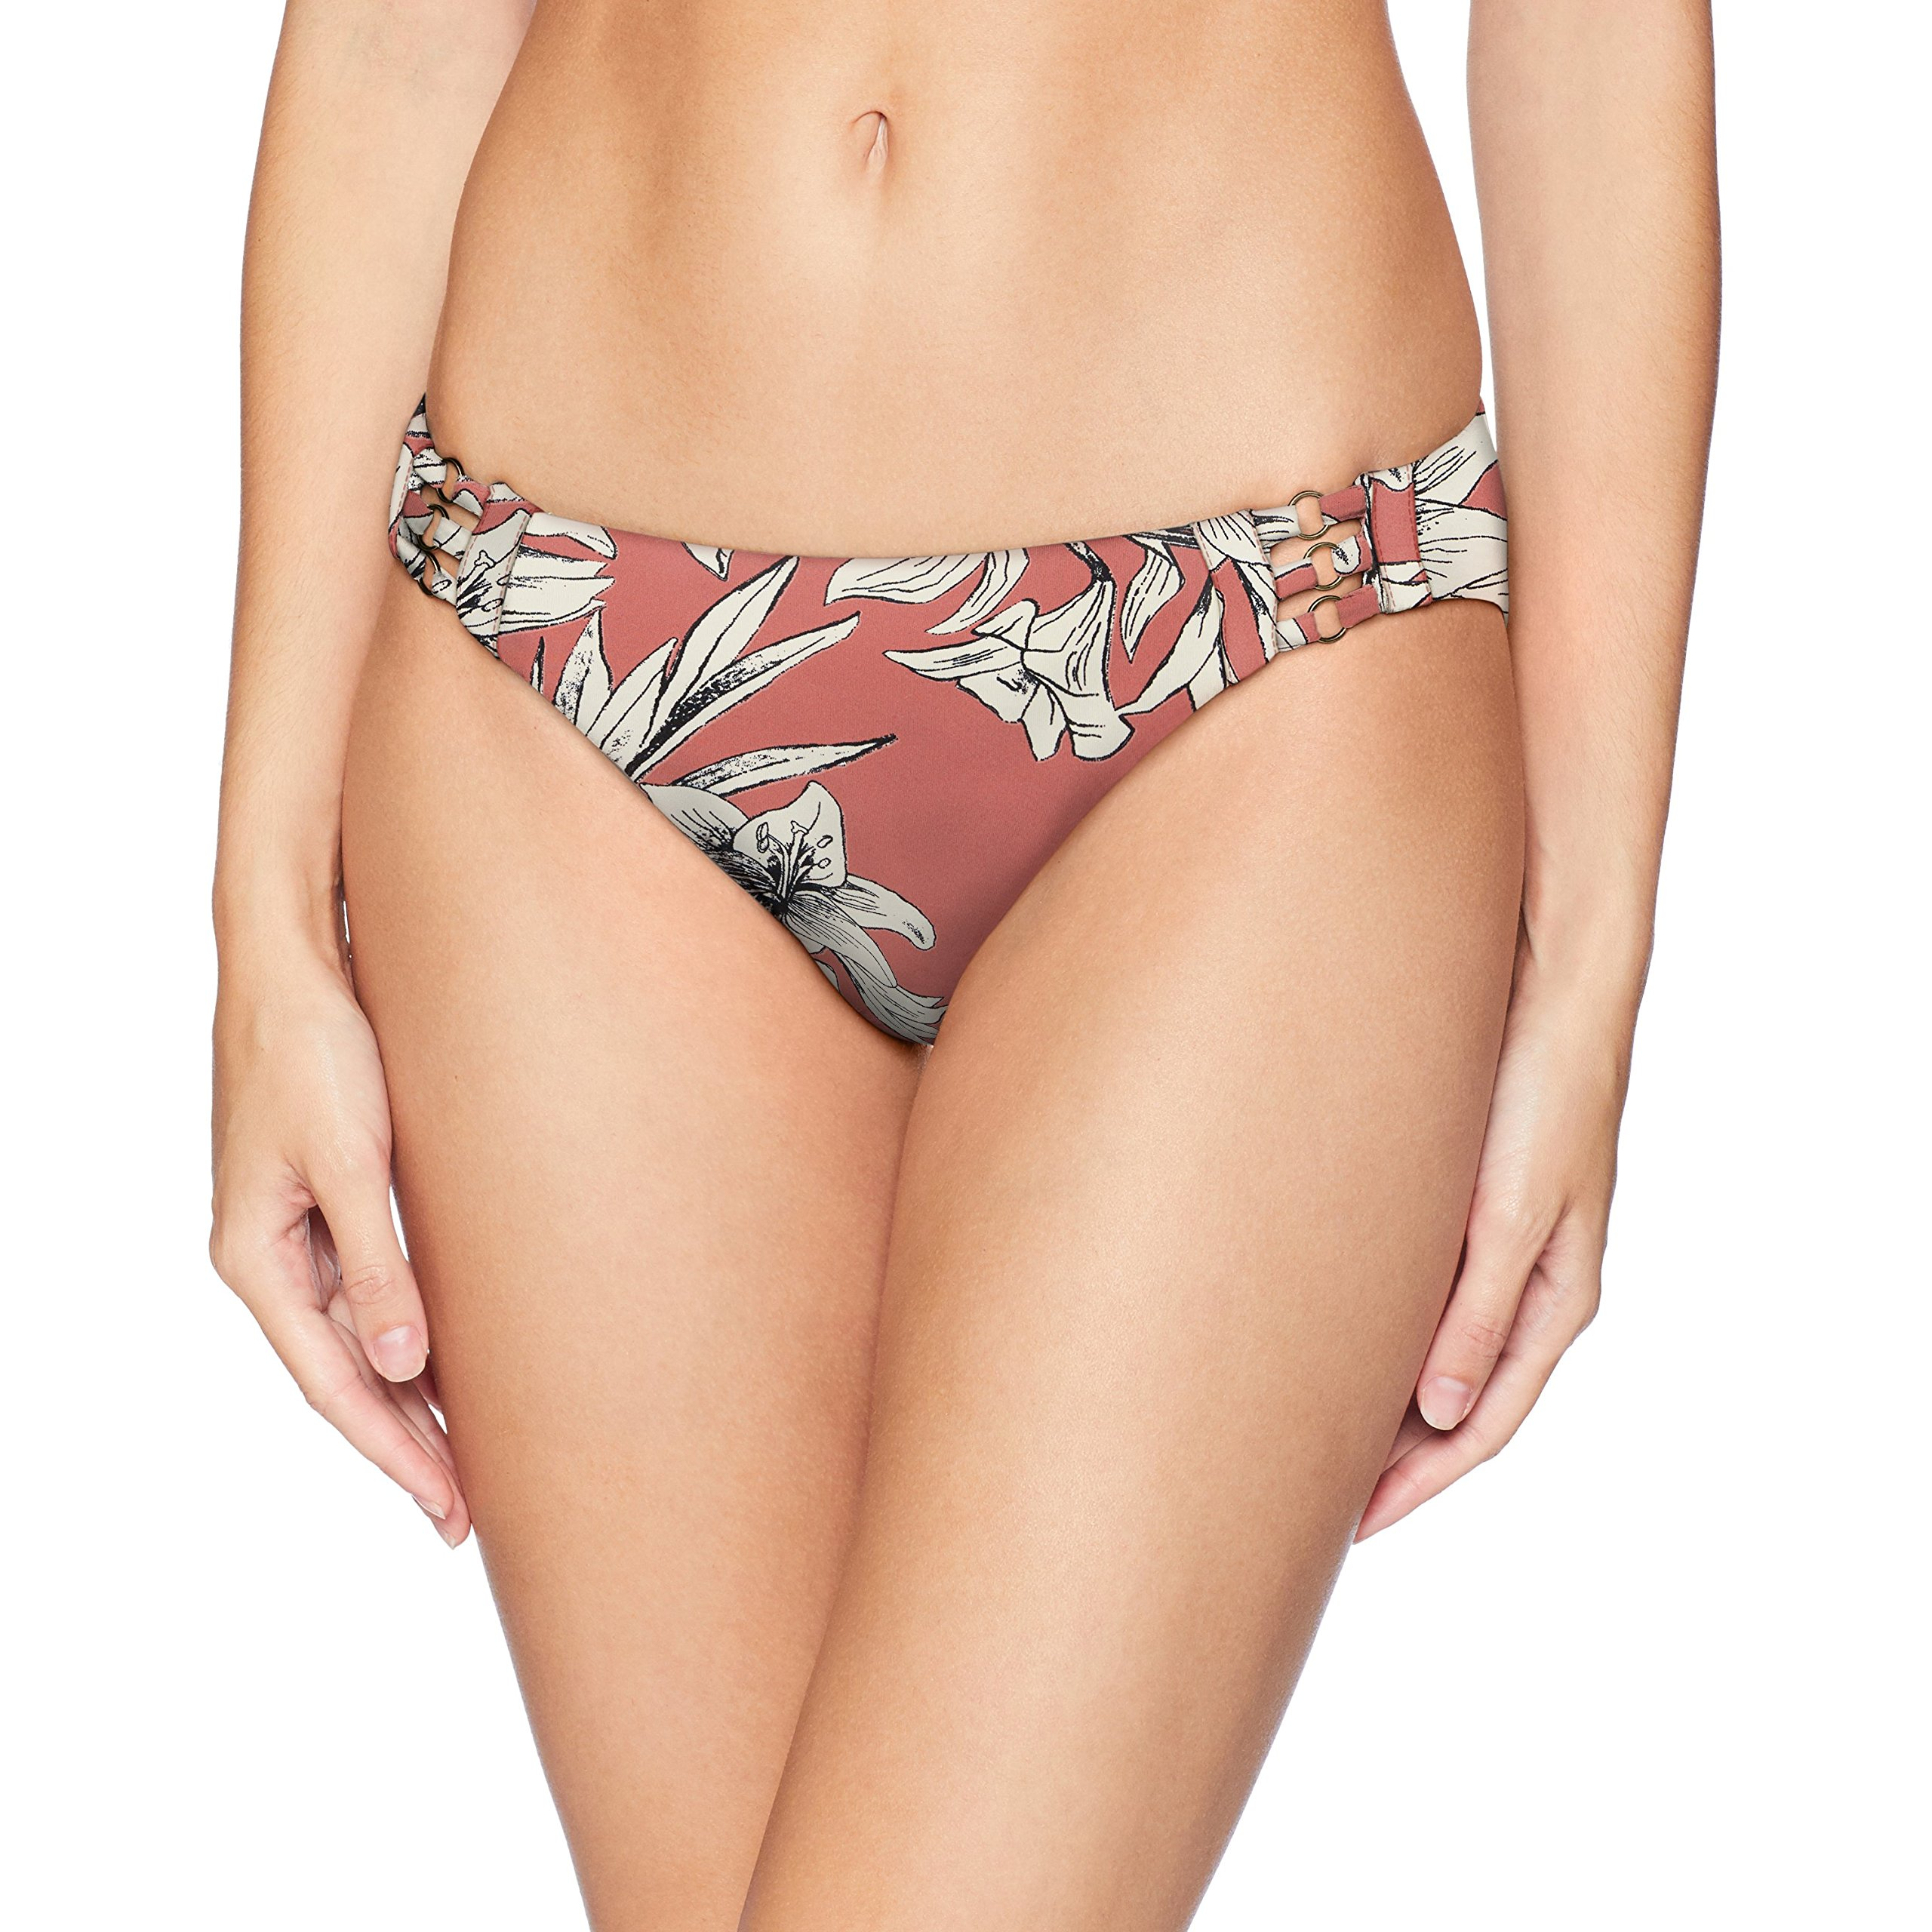 Roxy Junior's Printed Softly Love Full Bikini Swimsuit Bottom, Withered Rose Lily House, S